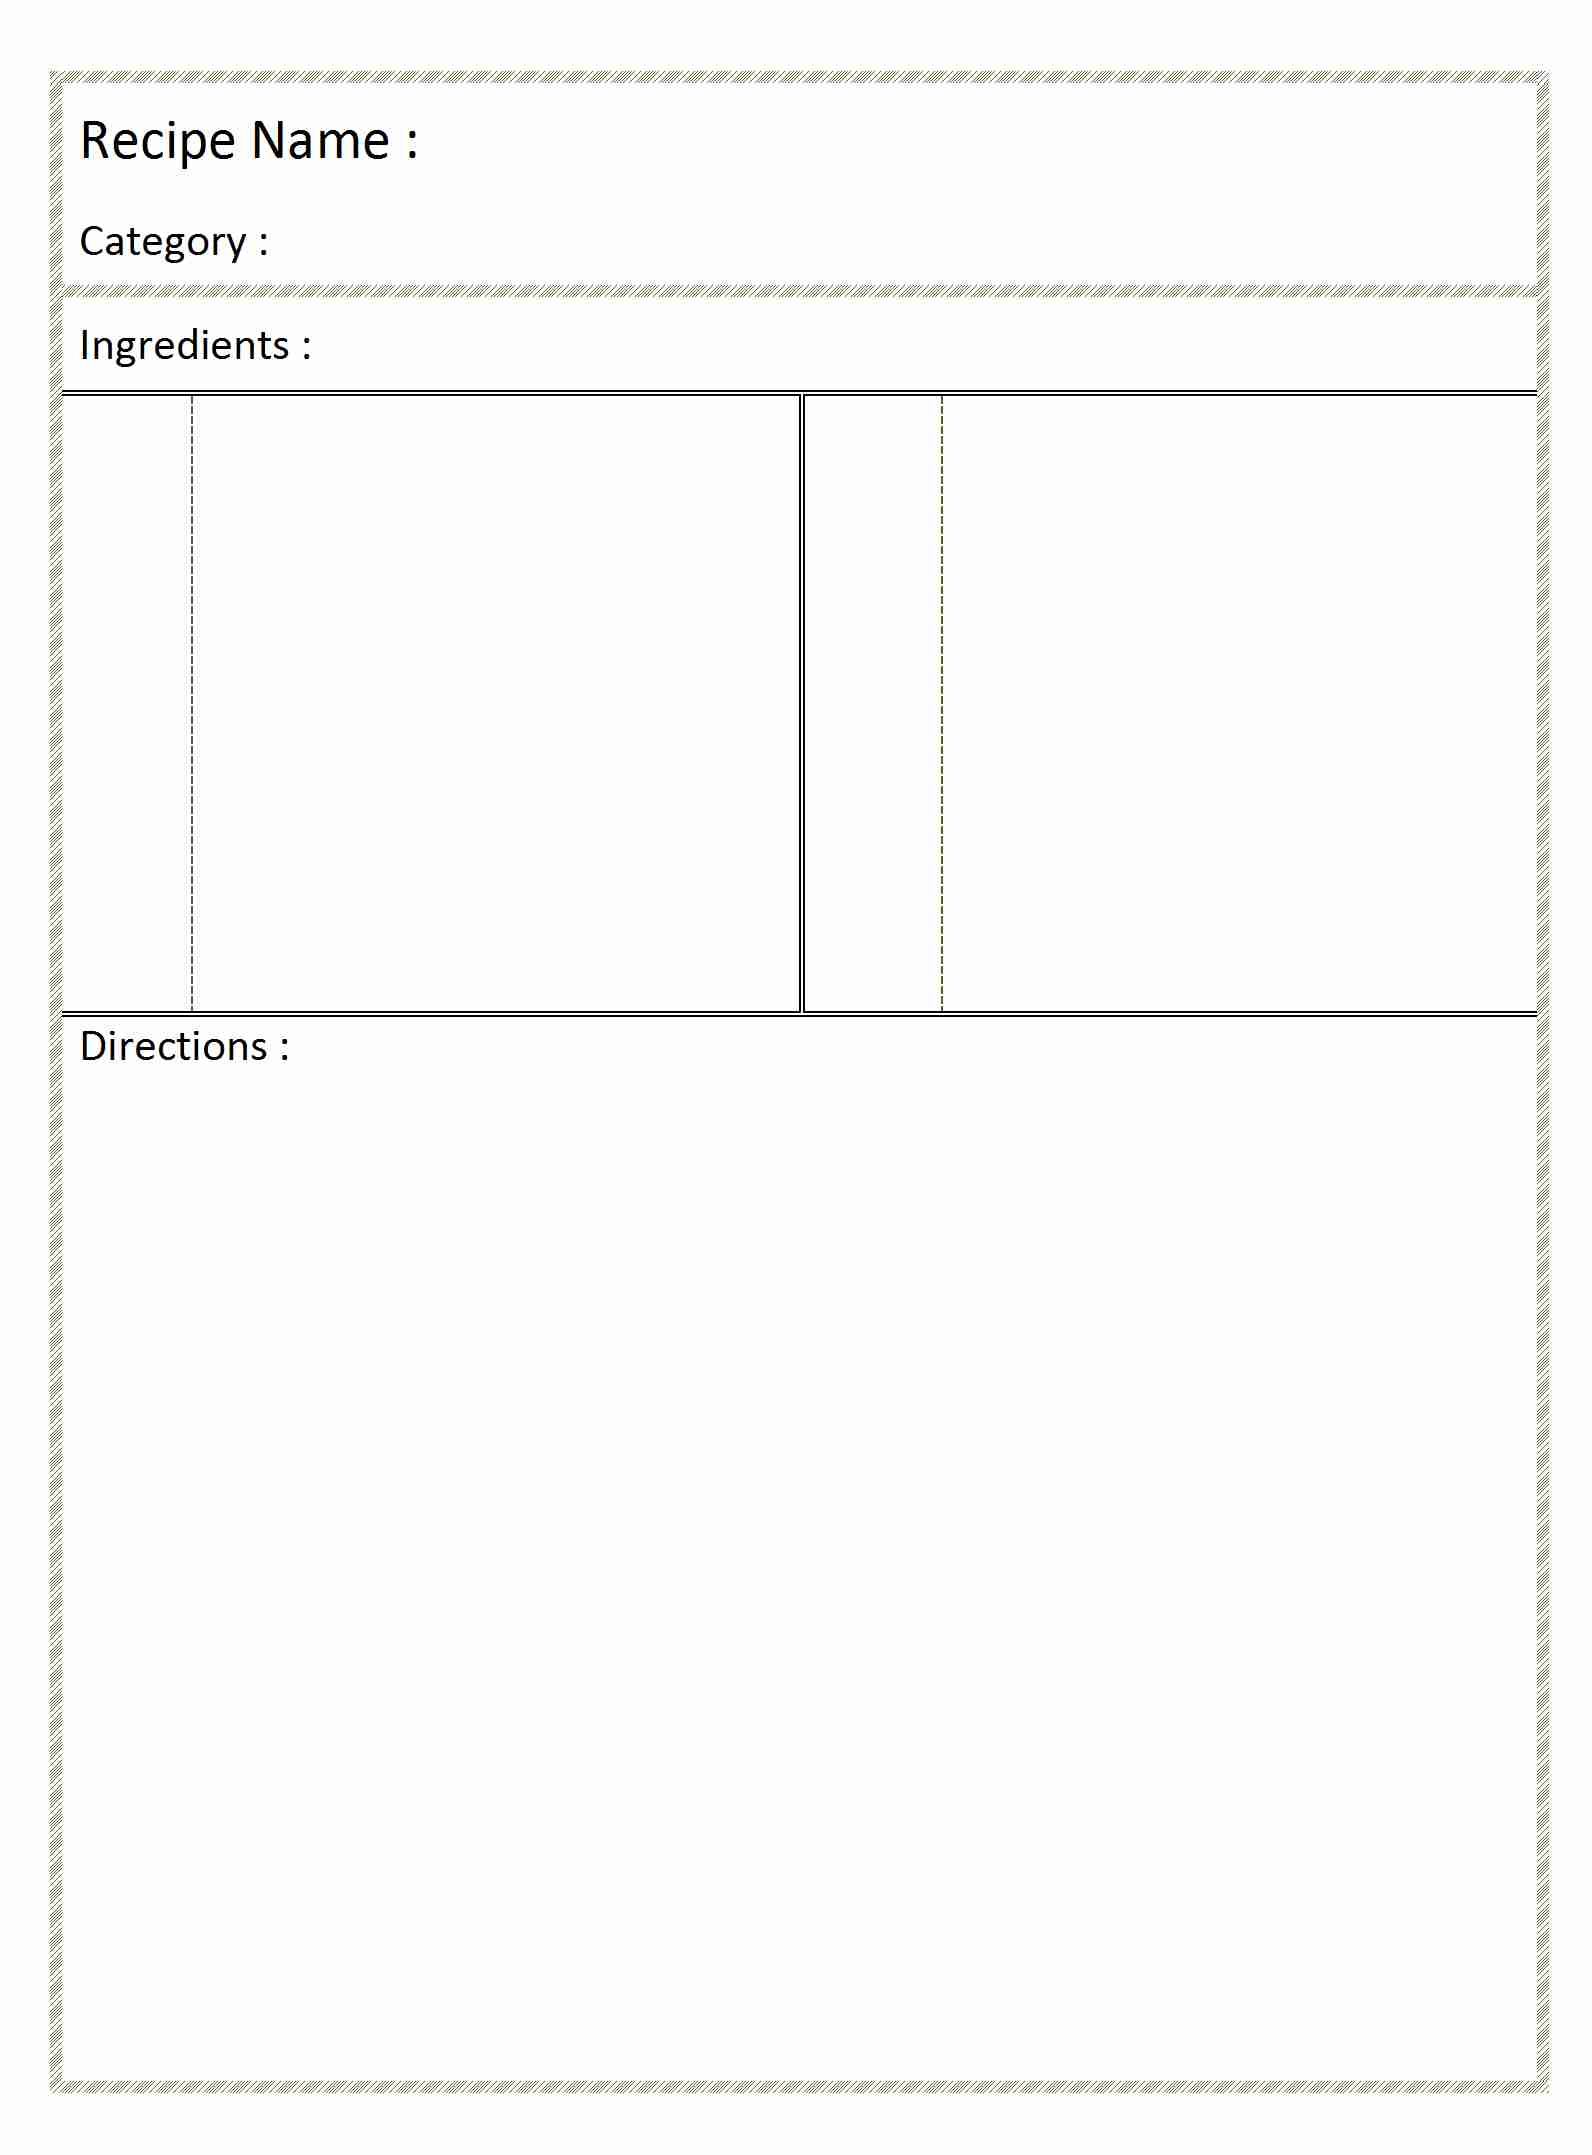 blank recipe card word templates free word templates ms word